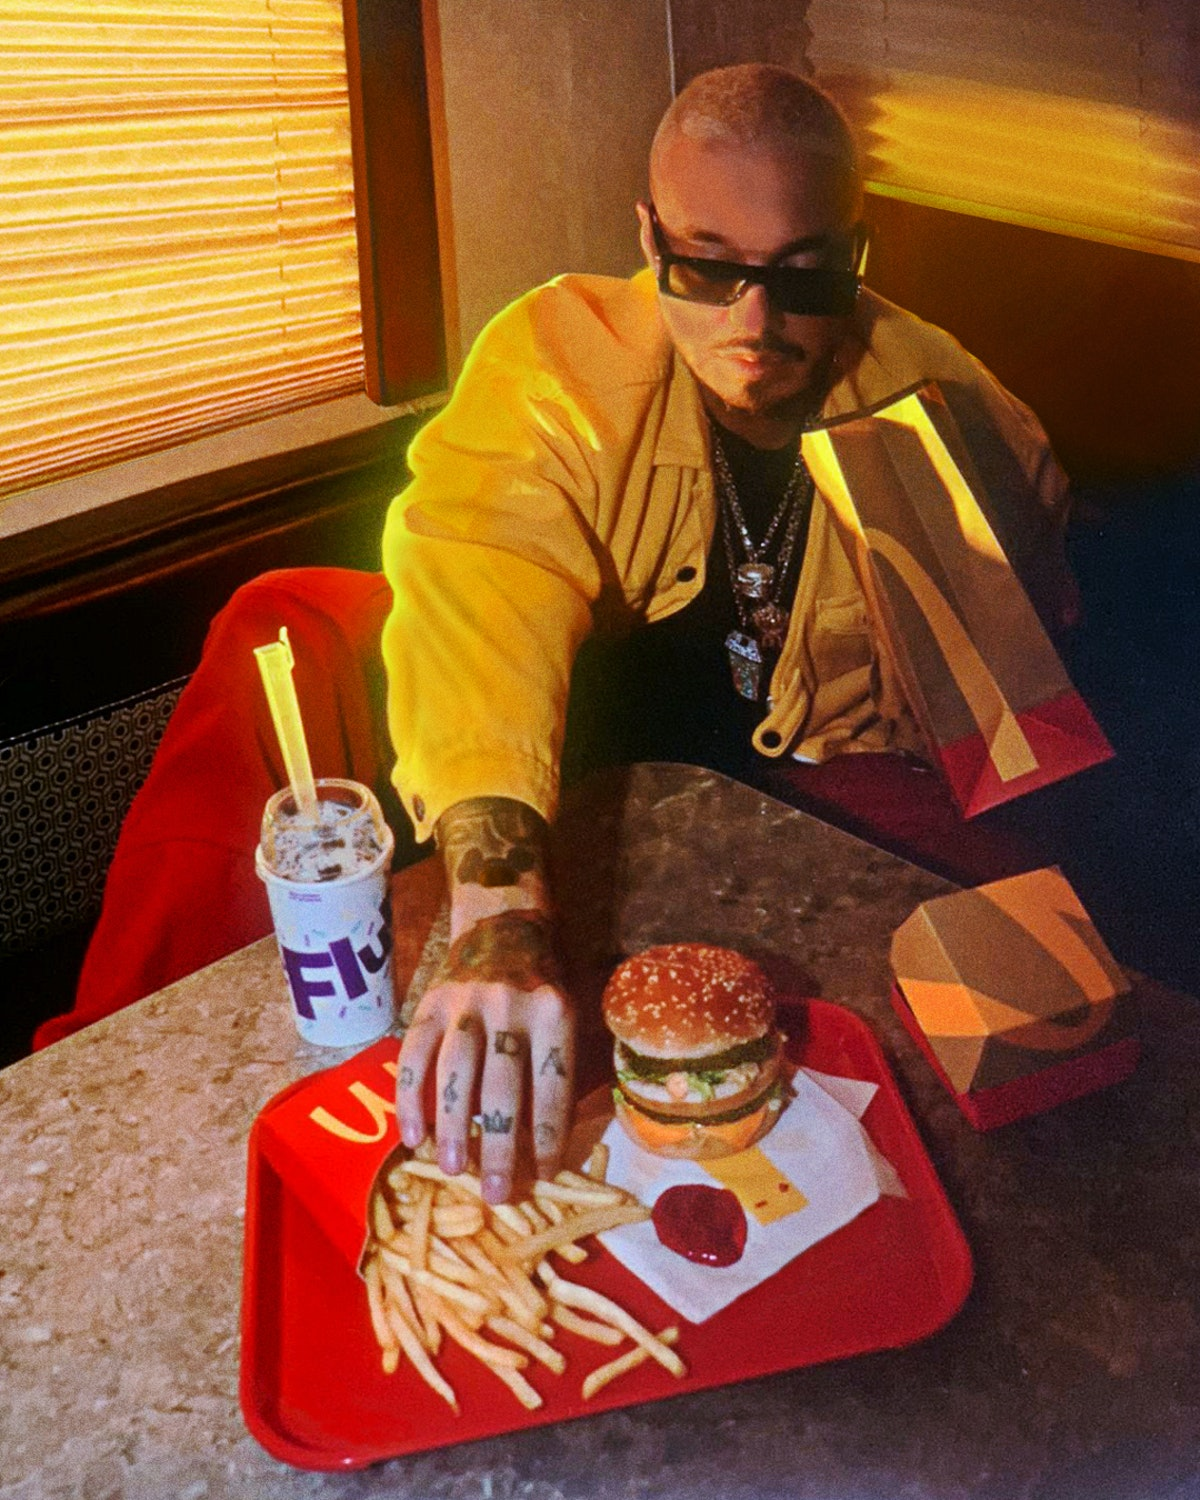 The McDonald's J Balvin meal includes a sweet treat.